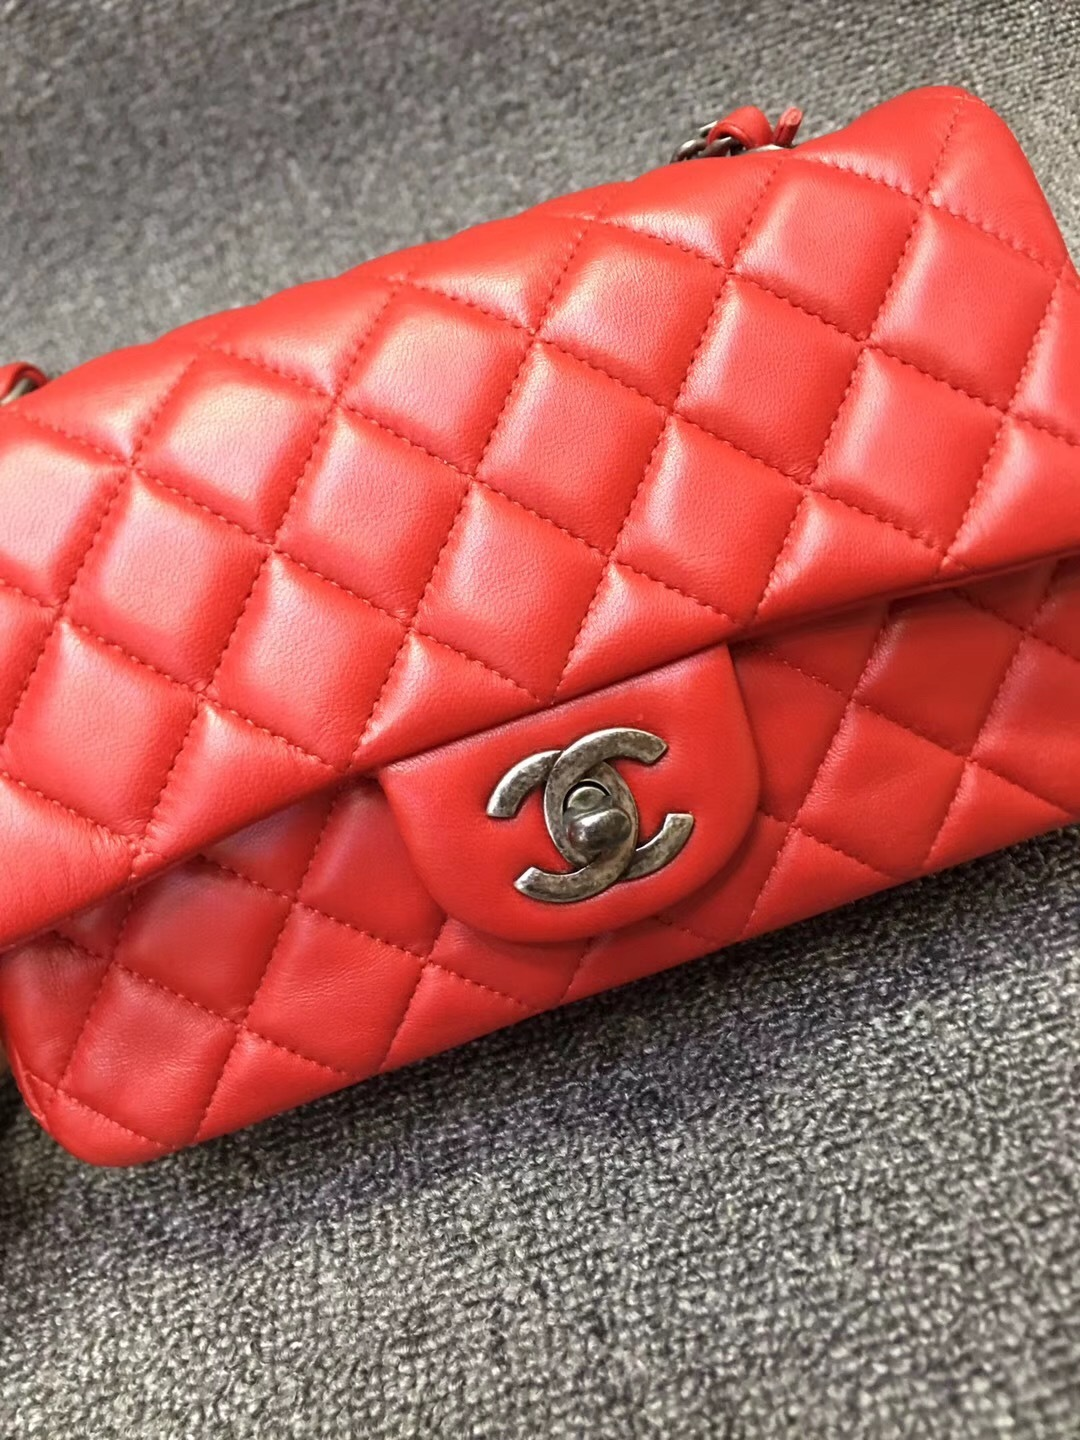 f7d9fb445a16 100% AUTHENTIC CHANEL RED QUILTED LAMBSKIN LARGE MINI RECTANGULAR FLAP BAG